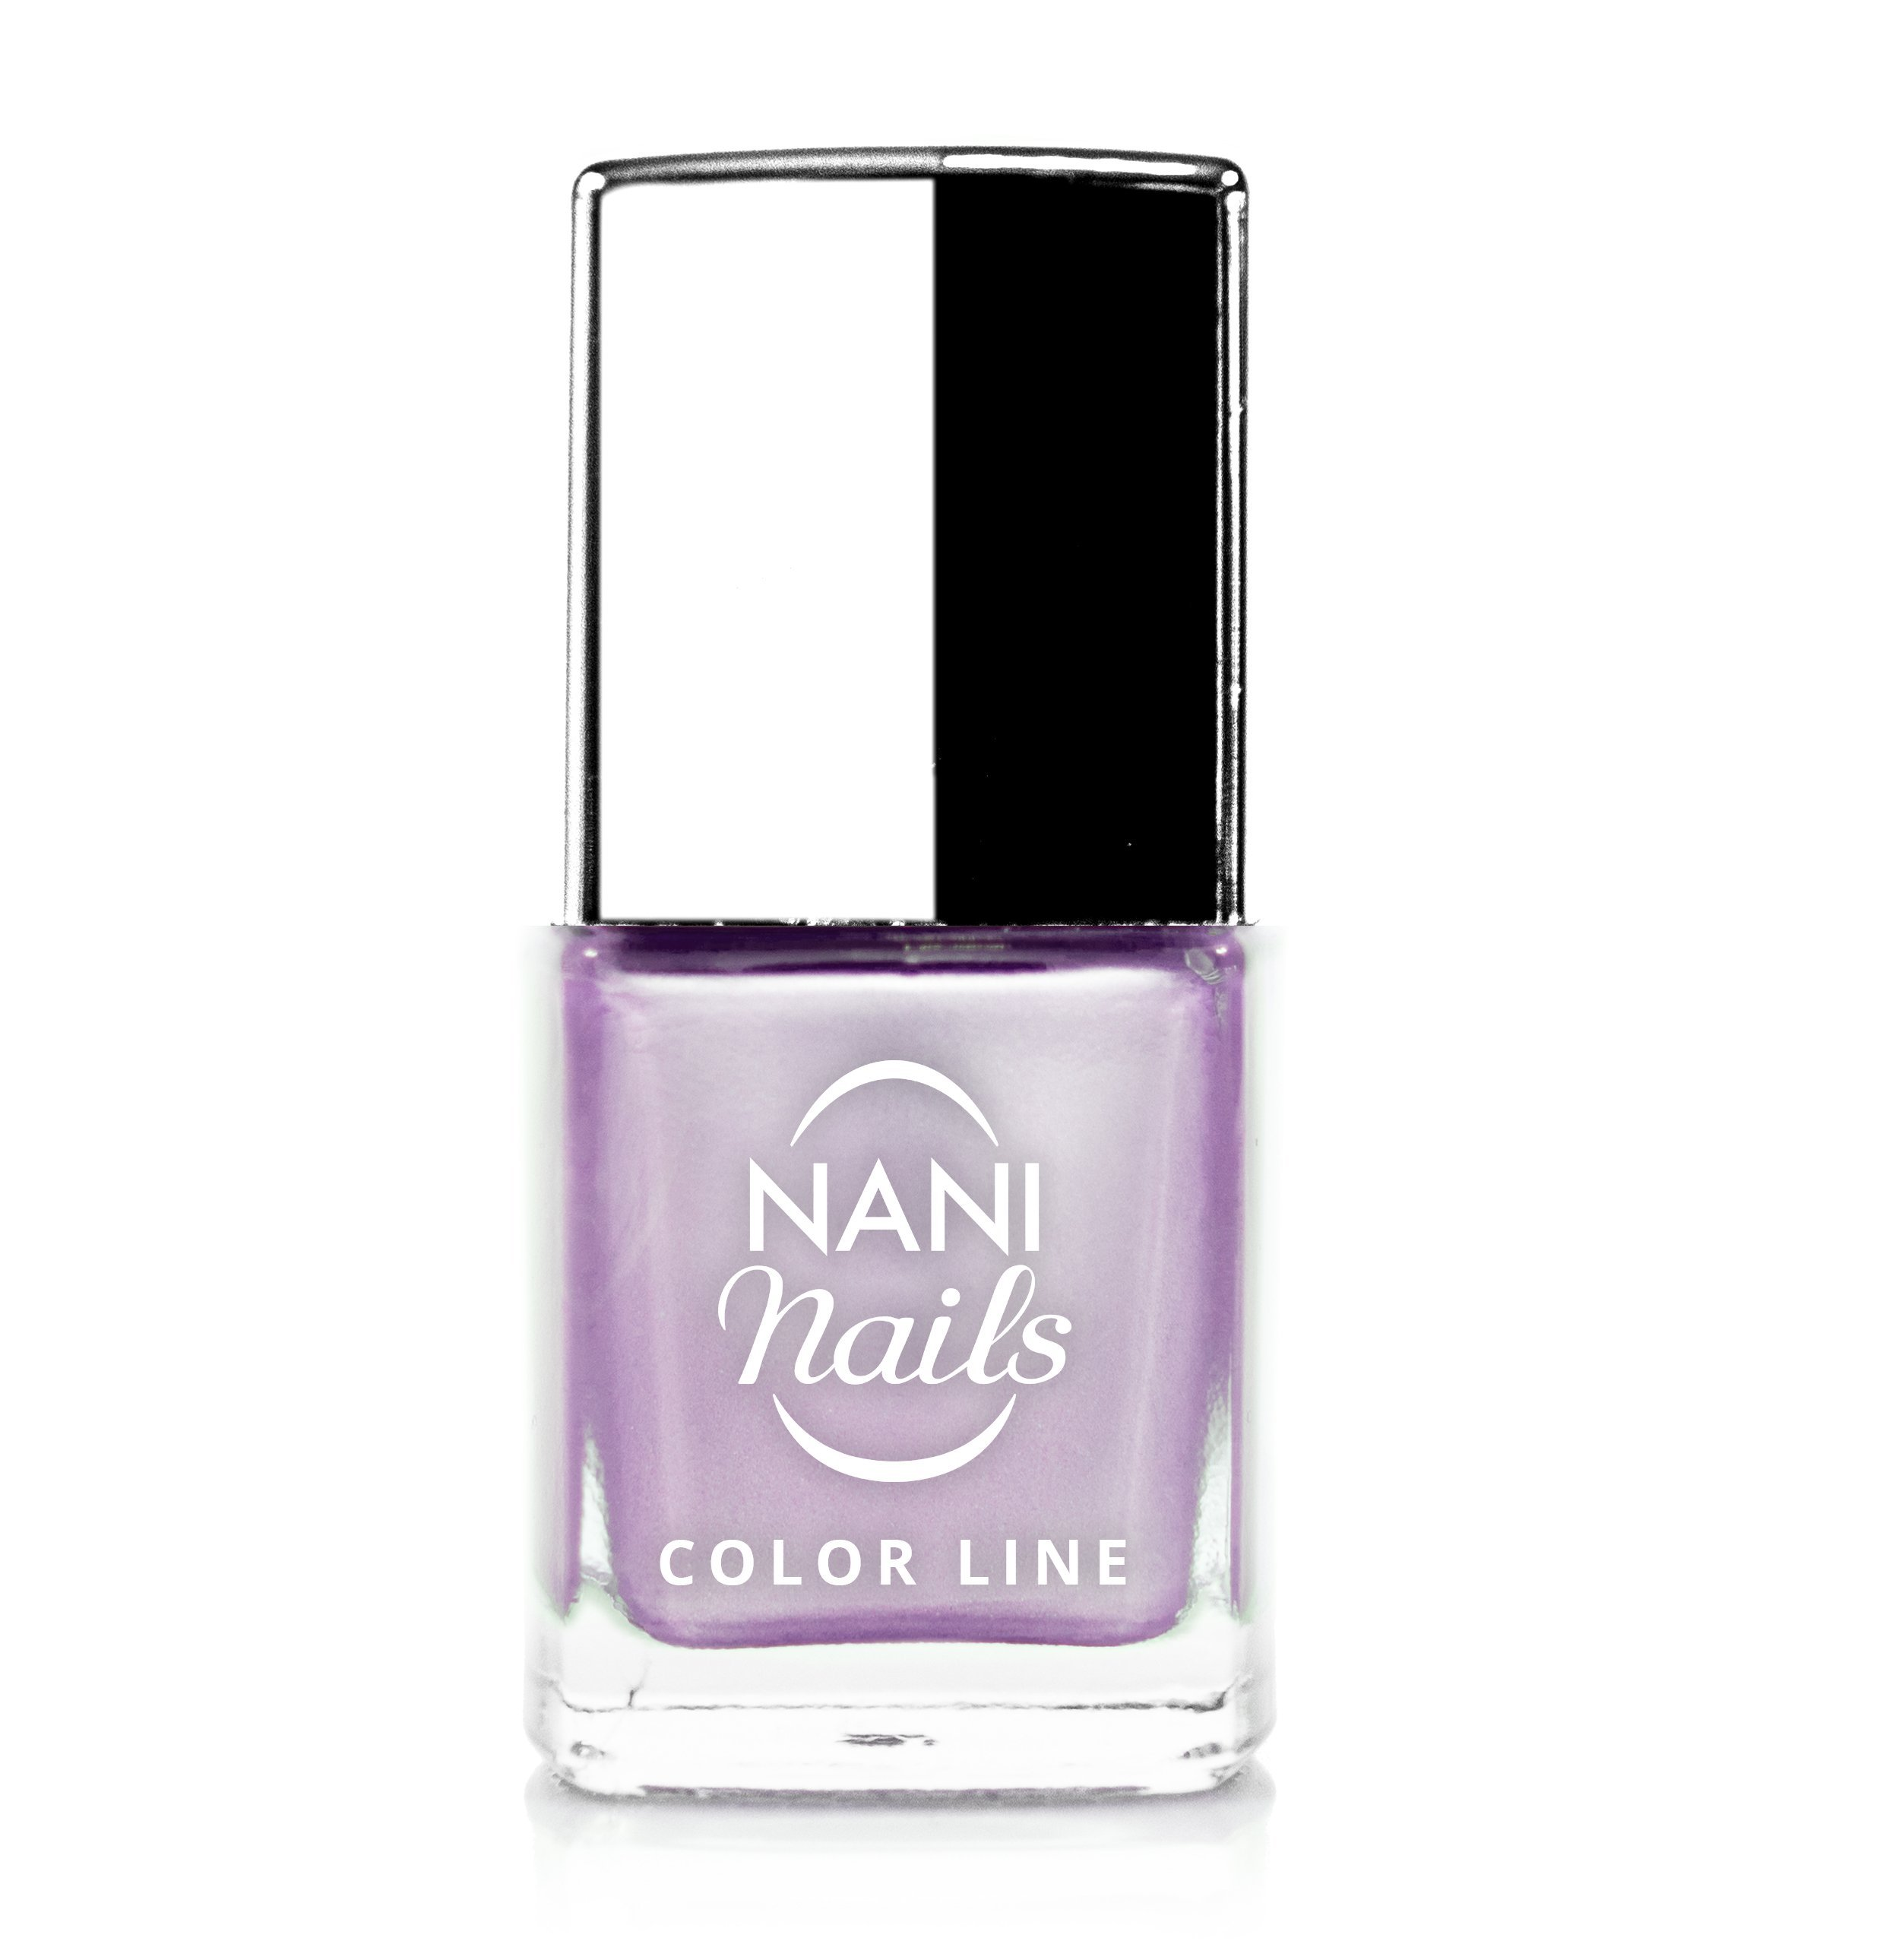 NANI lak Color Line 9 ml - 66